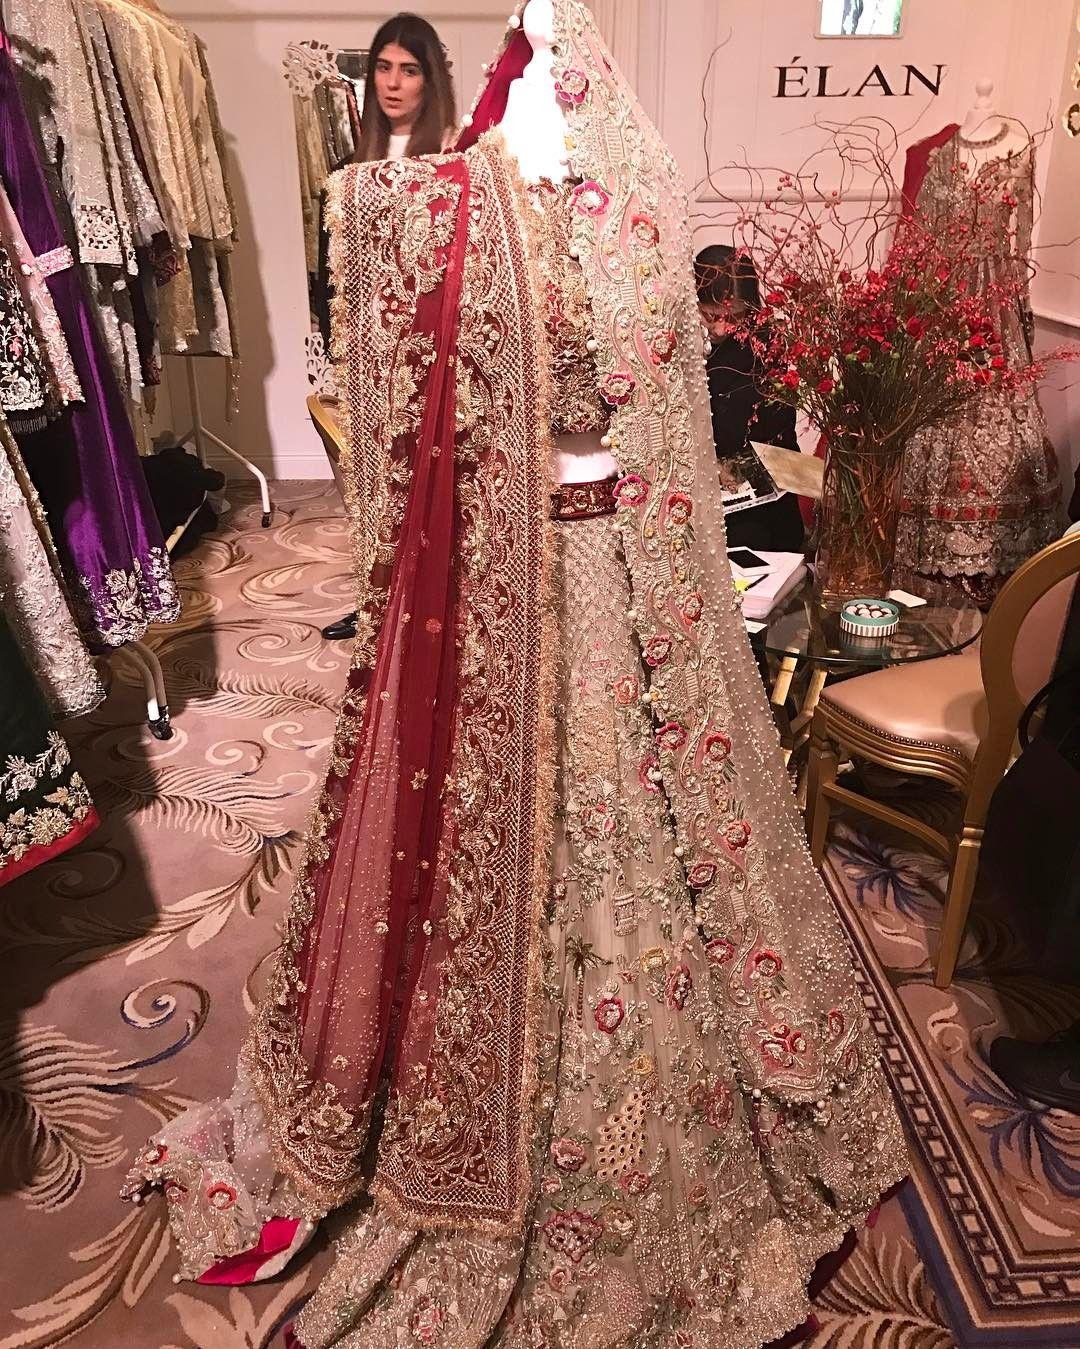 "86be37ac23 Aashni + Co on Instagram: ""A whole lot of decadence on offer by  @elanofficial at our Wedding Show today. #aashniweddingshow #aashniandco  #indianfashion ..."